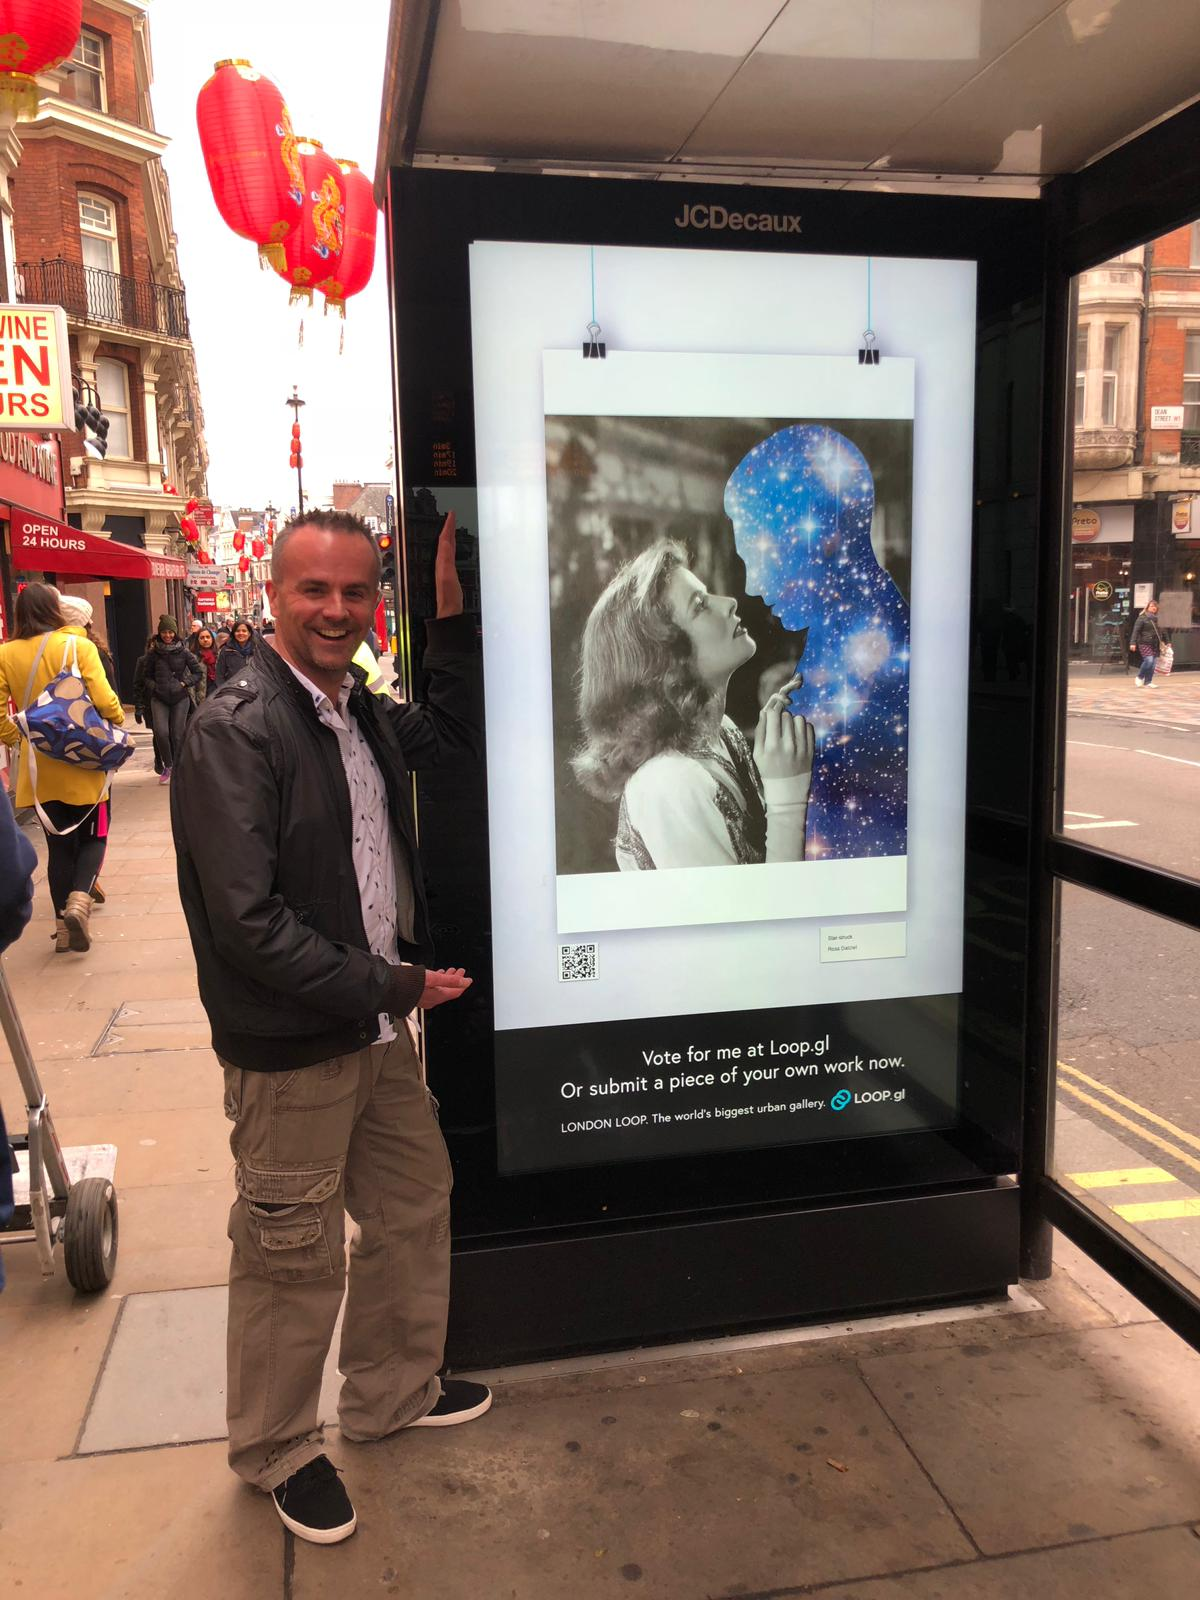 London billboard artwork - I was lucky enough to have some of my handcut collage artwork featured on several digital billboards around London. A great opportunity for up and coming artists to show their work to the general public. Thank you for your support!